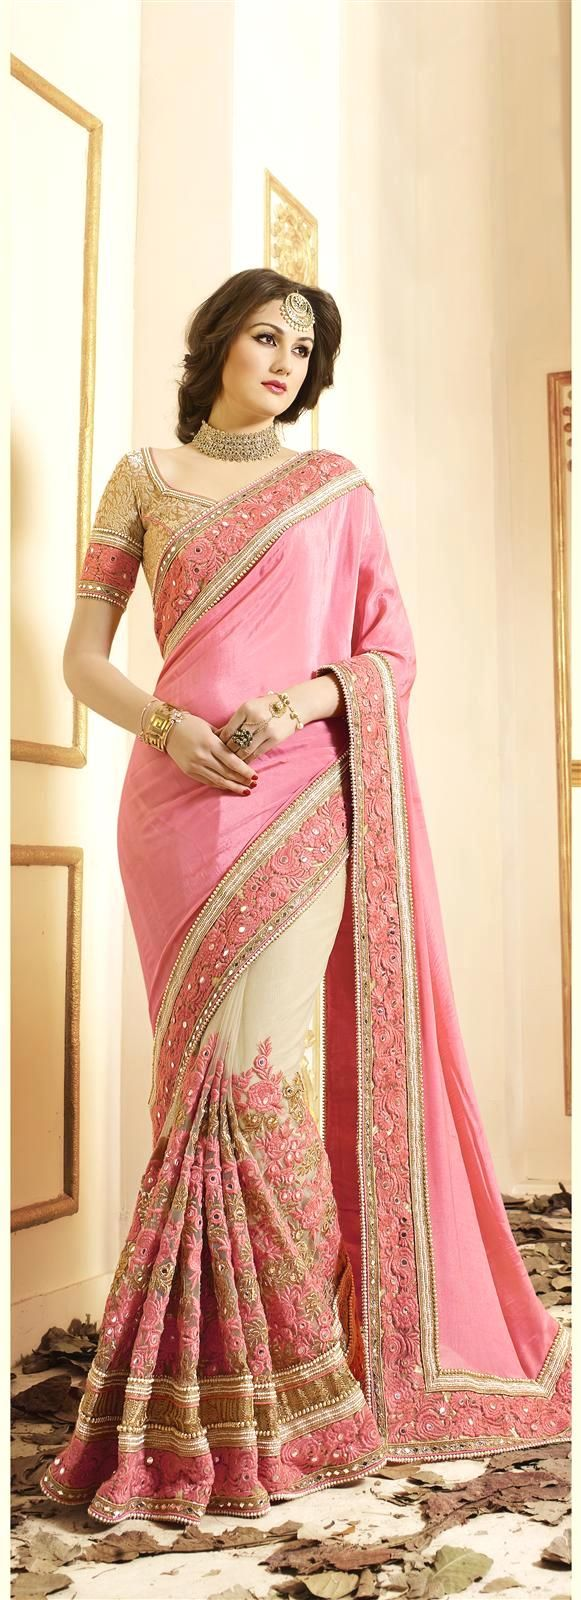 Silk saree lehenga astounding georgette pink designer saree  if i went to a ball